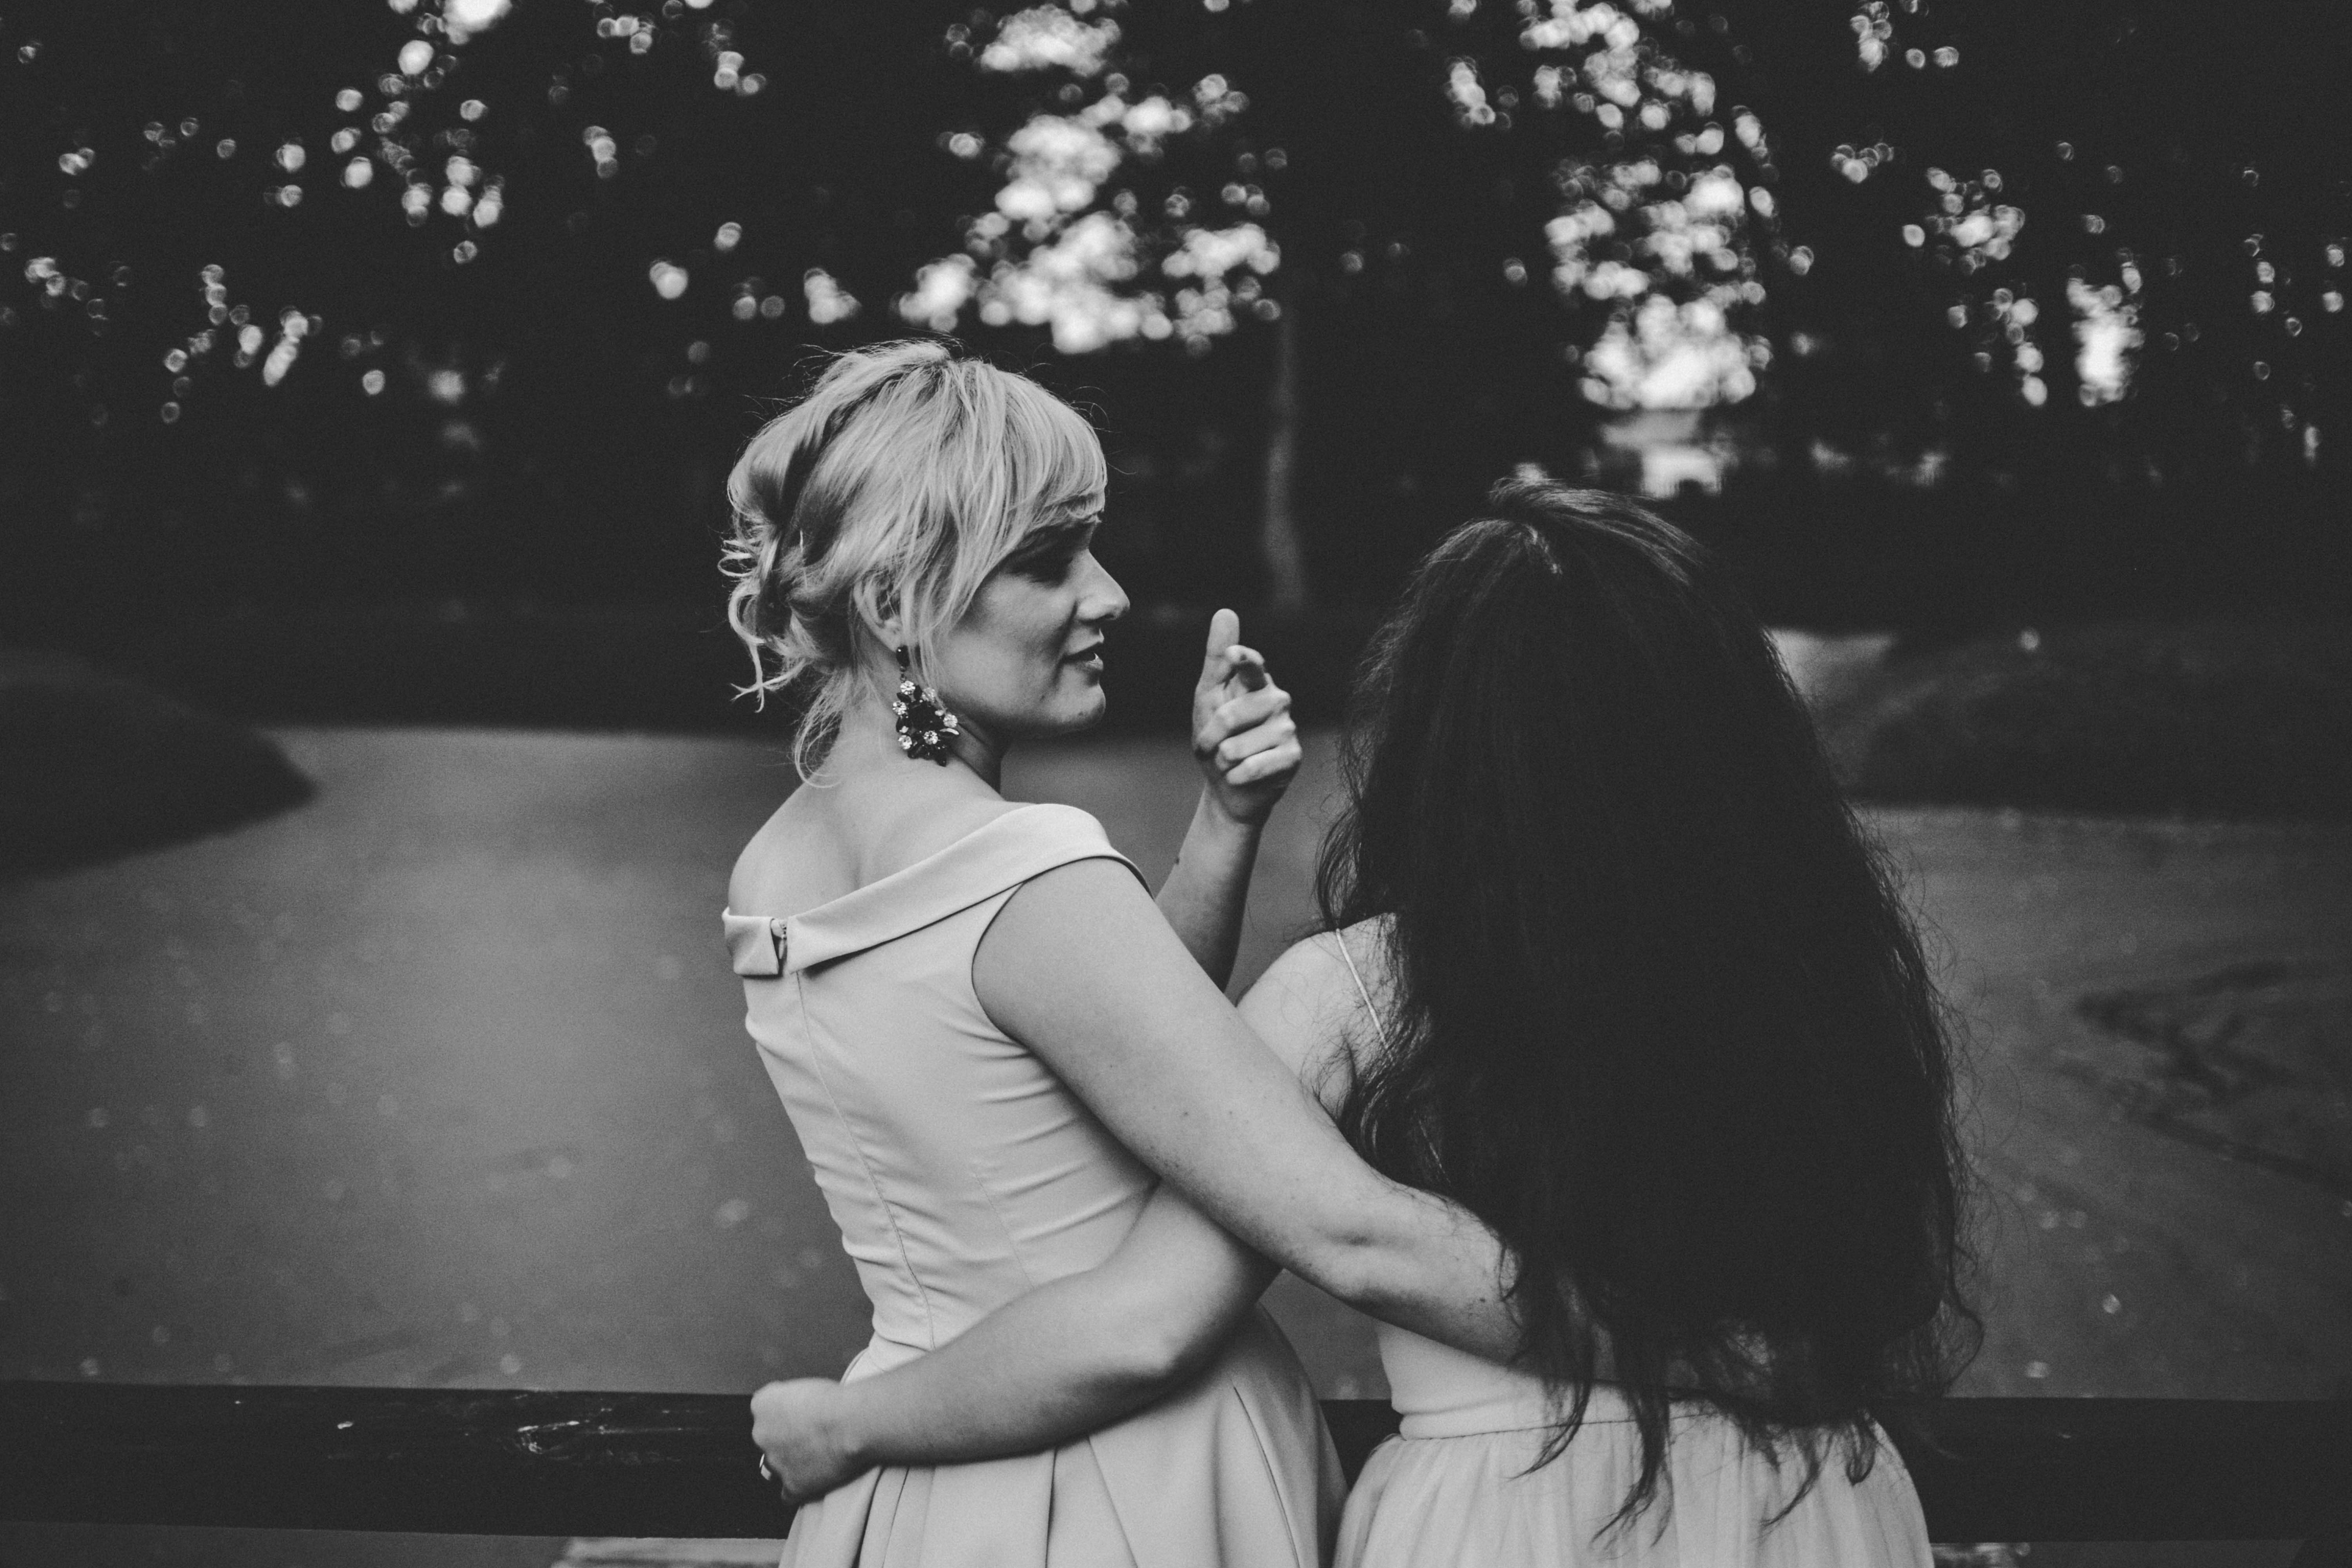 grayscale photography of two women holding each others waist